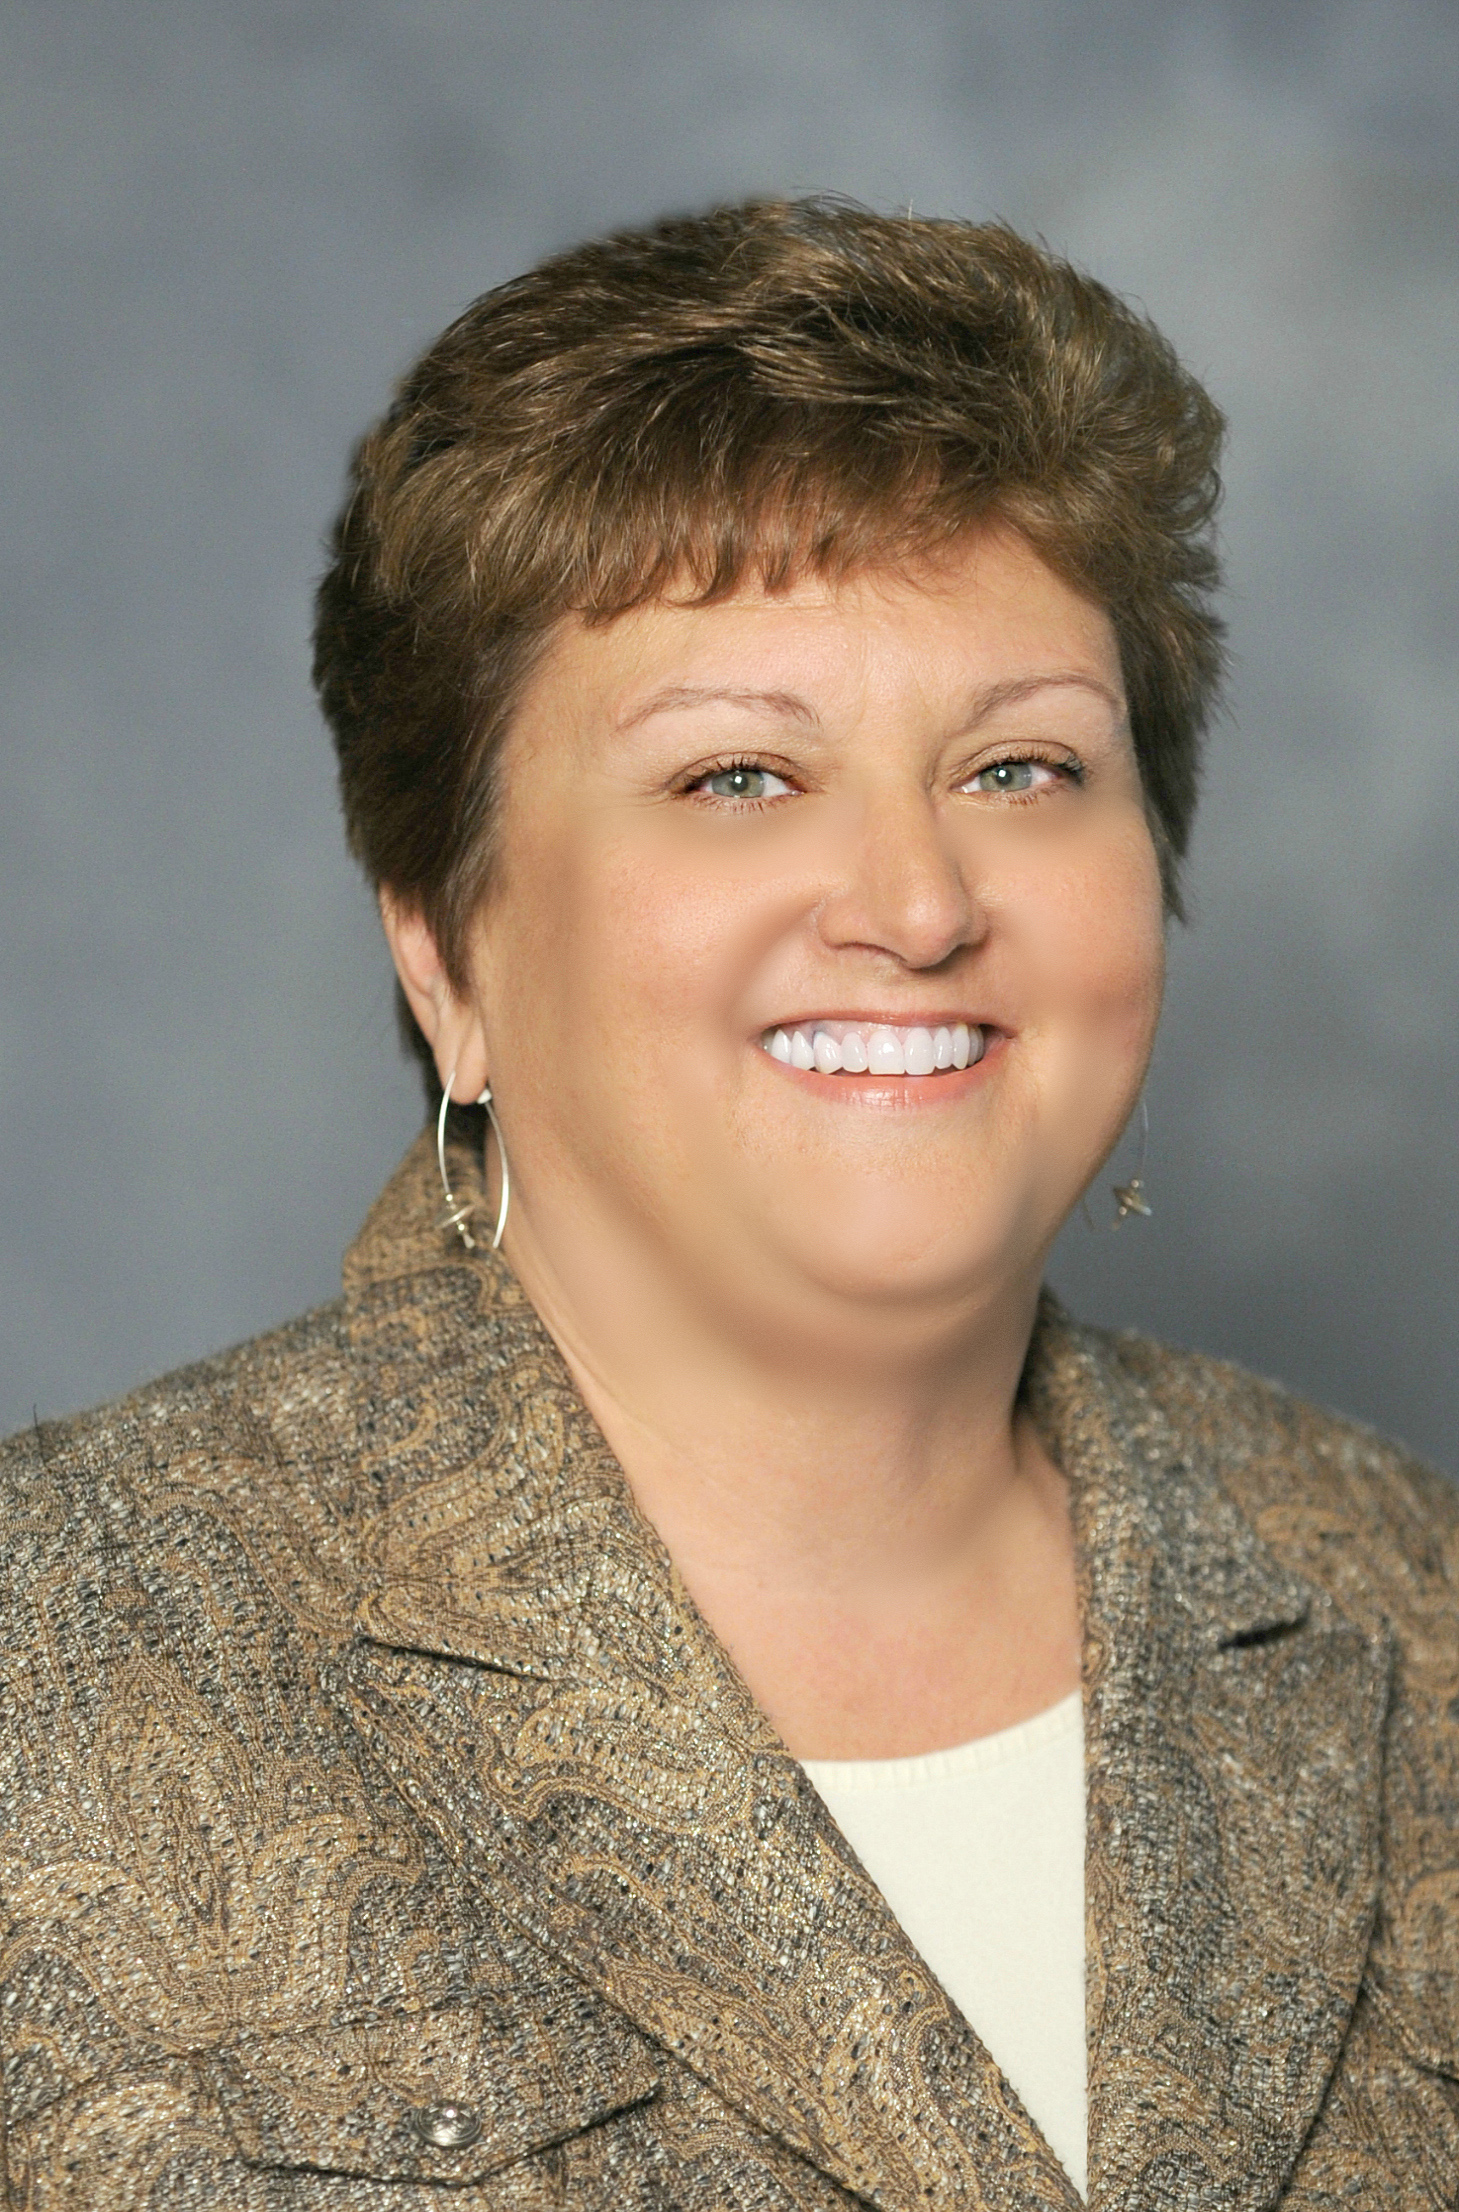 Elizabeth Andress, professor of foods and nutrition in the University of Georgia College of Family and Consumer Sciences, has been named the 2012 recipient of the National Award for Excellence in Extension for her long-term success in combining research and education in food safety.